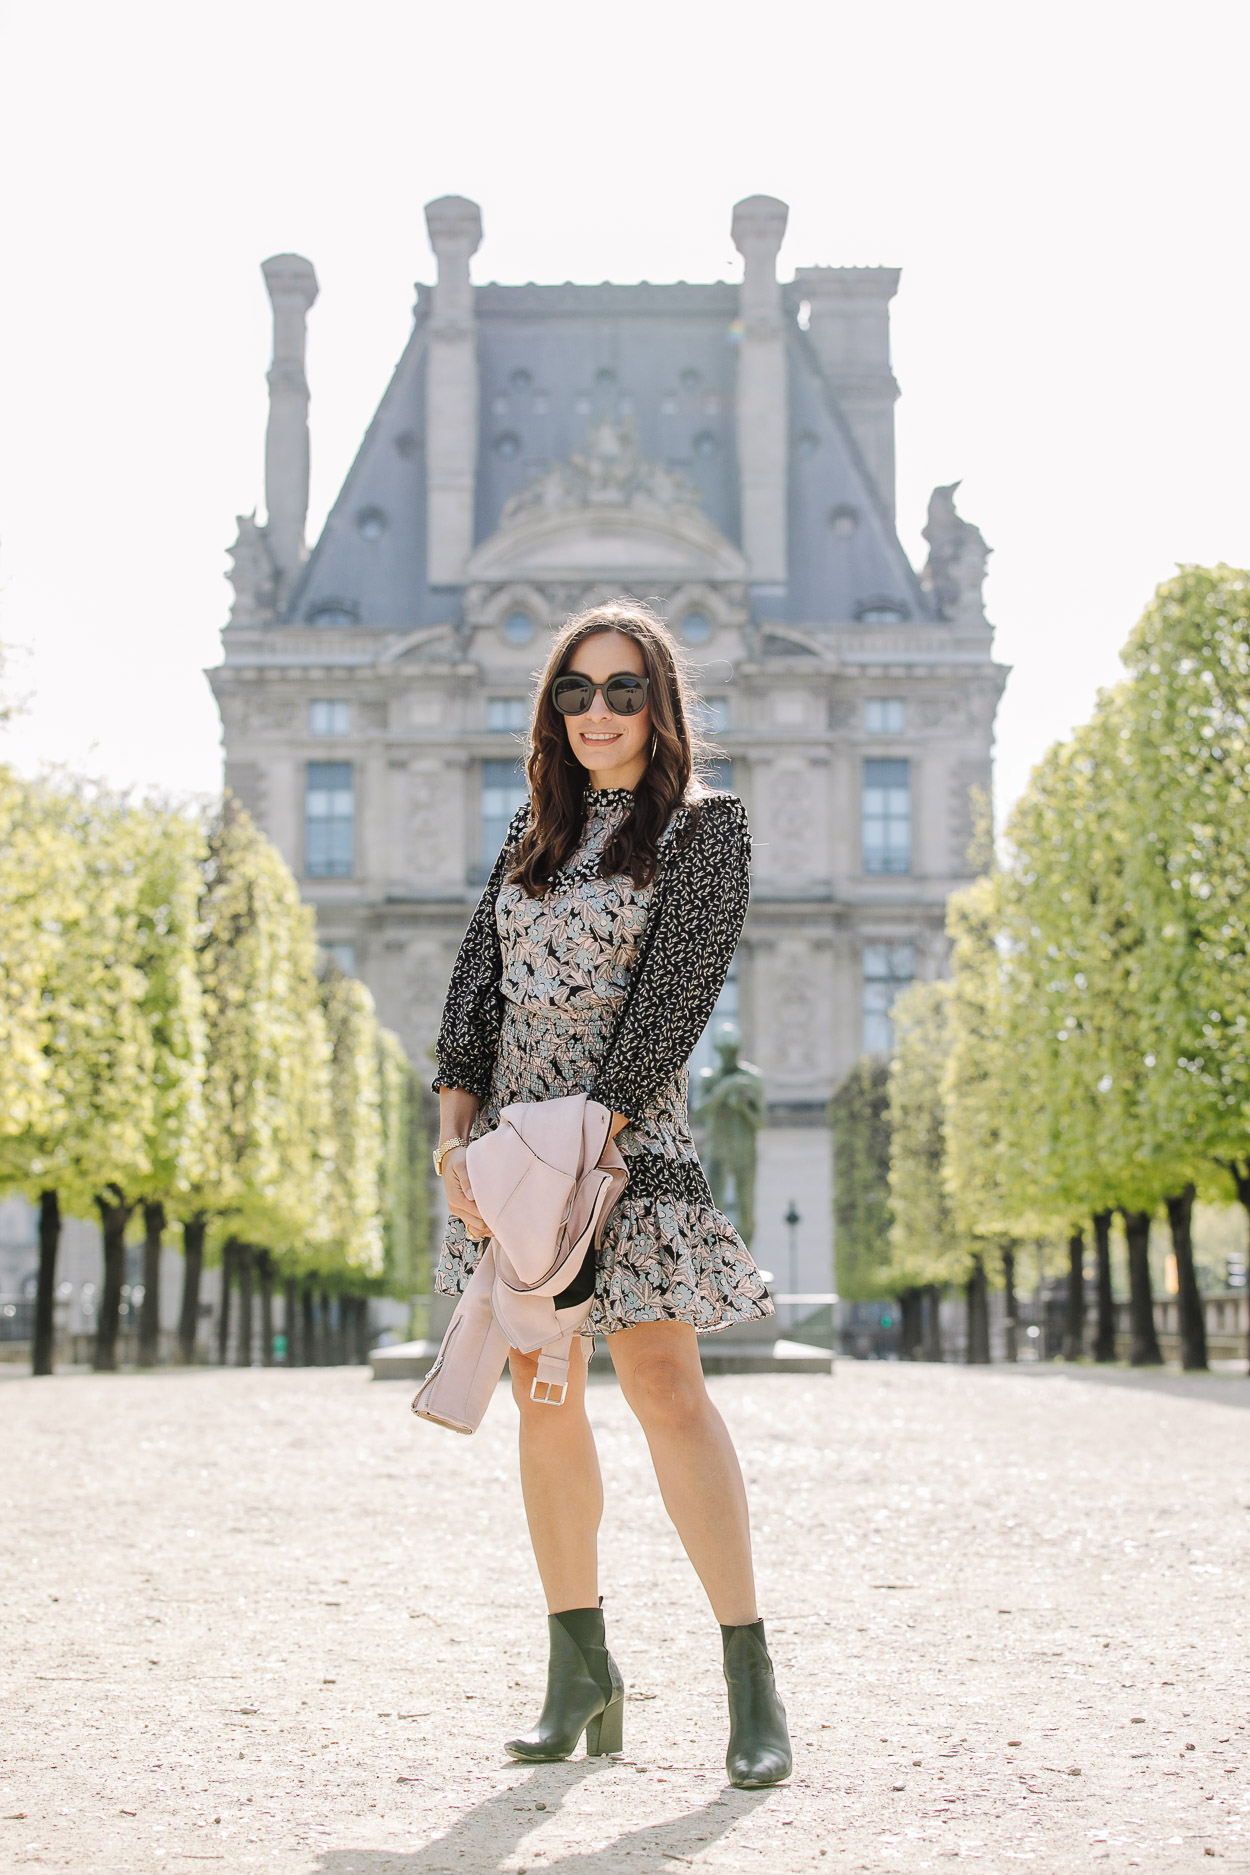 Silk floral dress worn at Garden Tuileries by AGlamLifestyle blogger Amanda on her Paris vacation